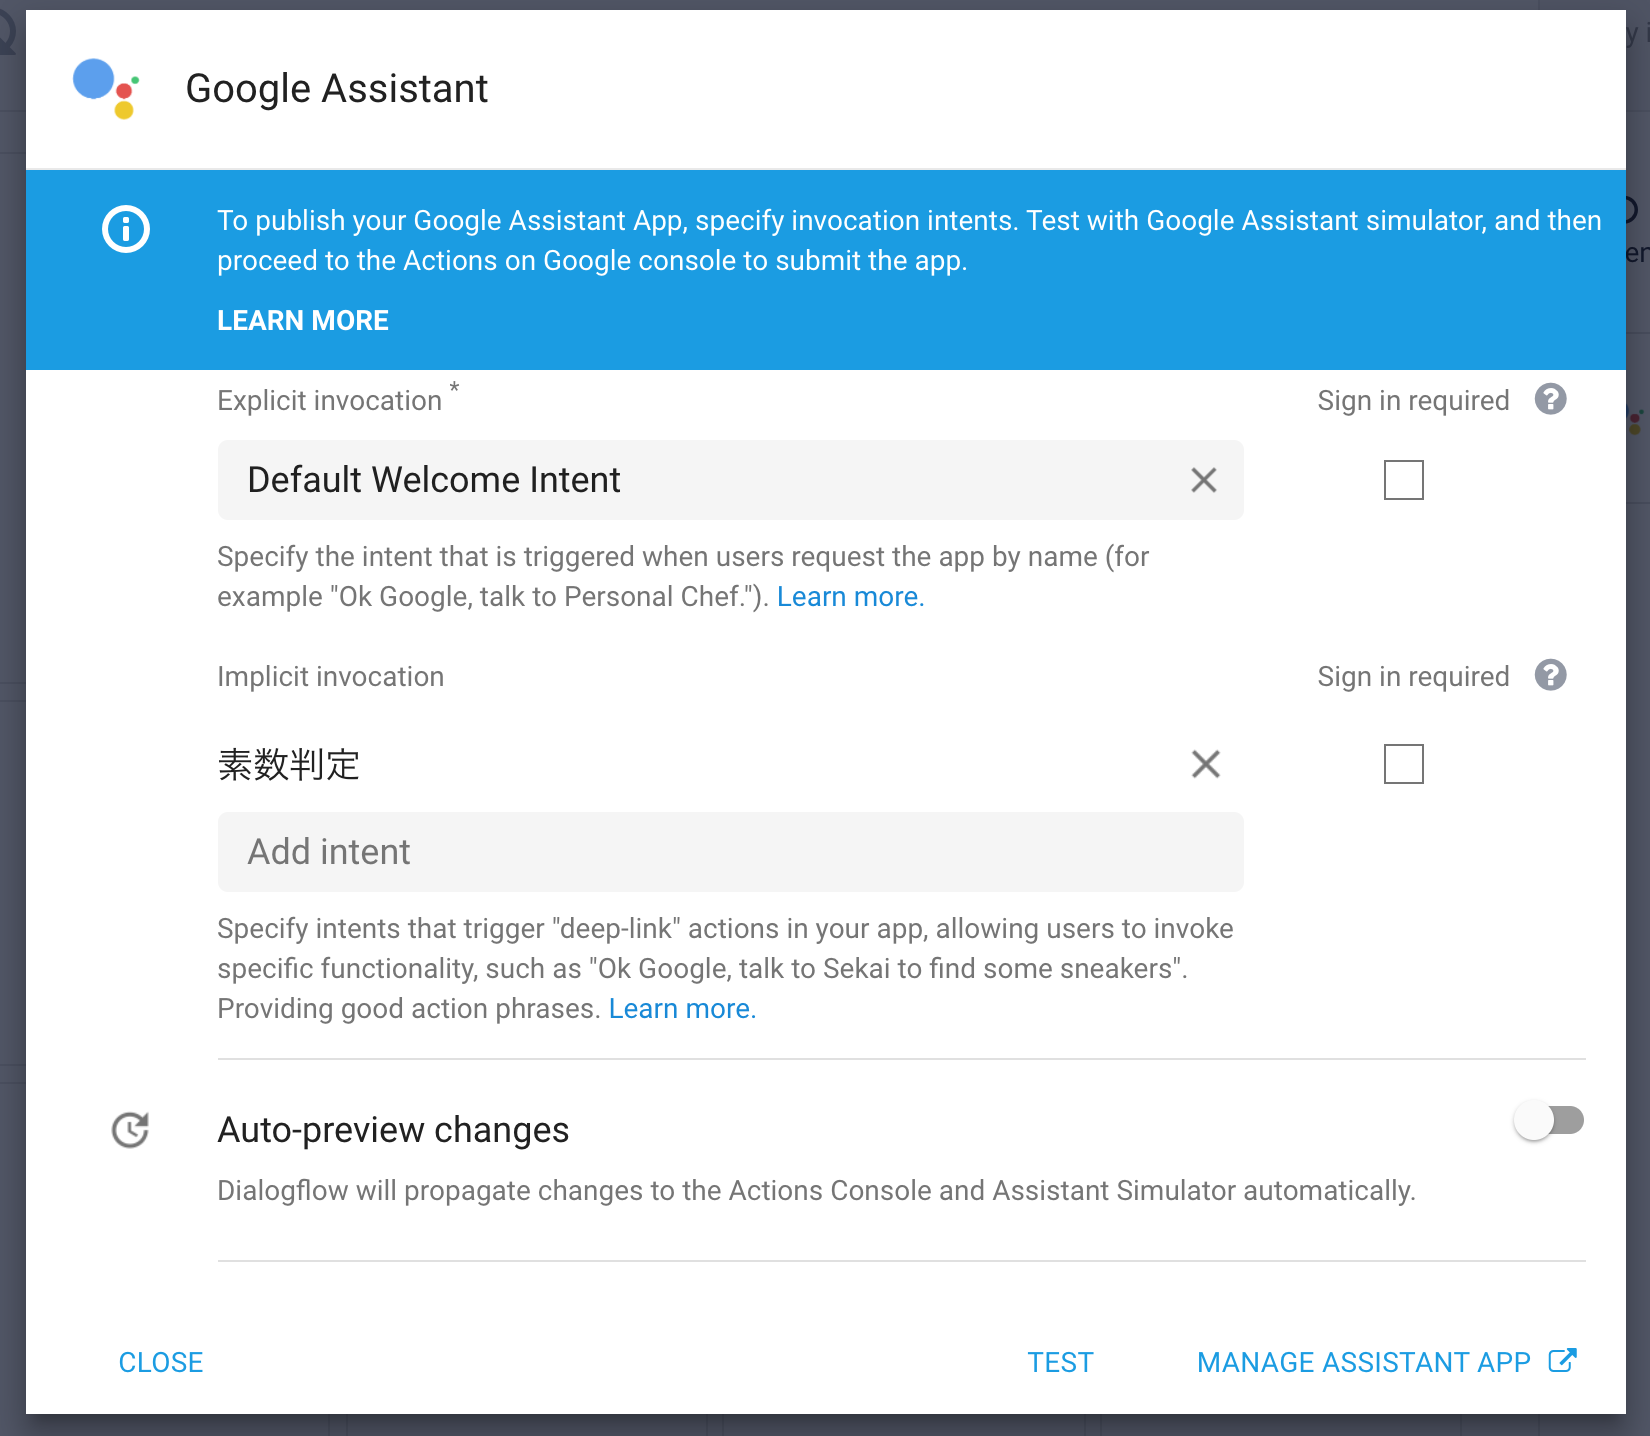 manage-assistant-app.png